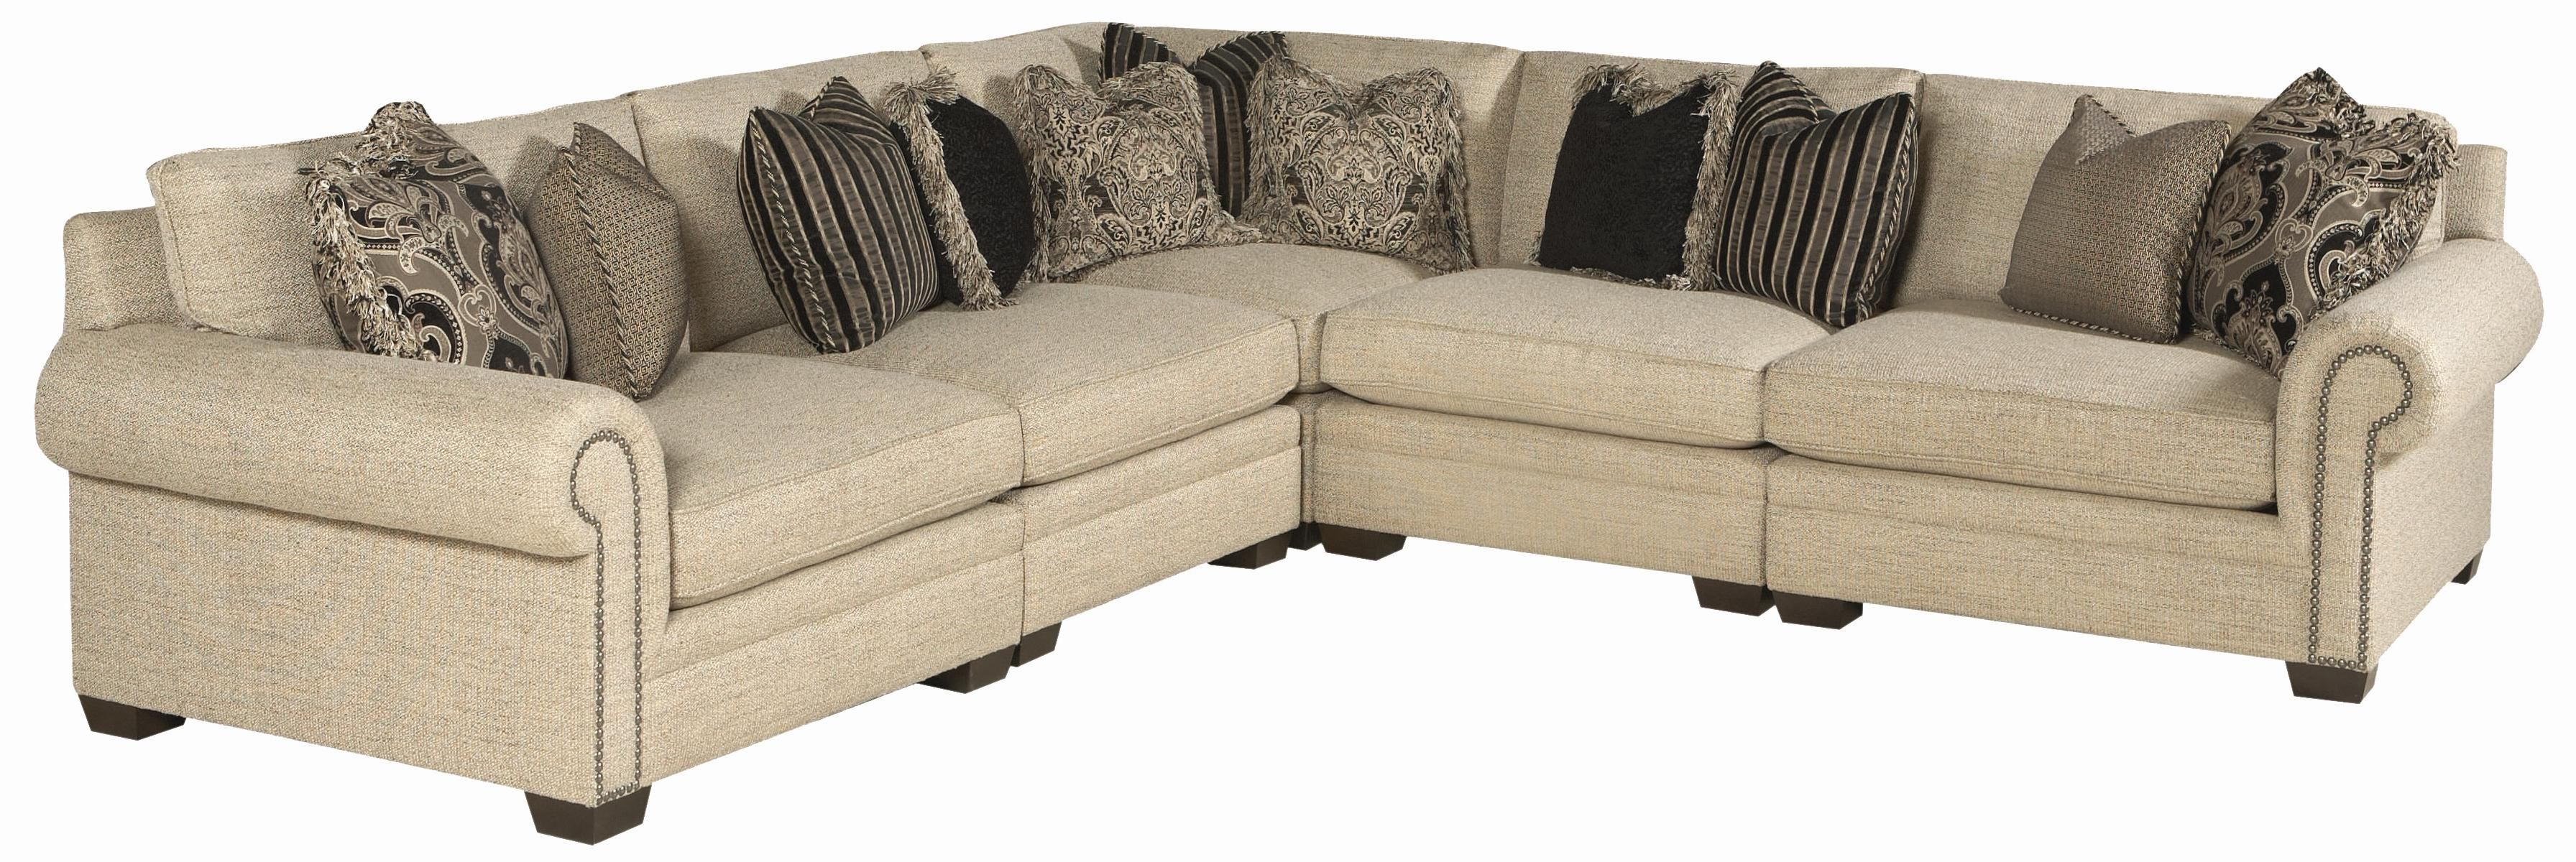 Grandview Traditional Sectional By Bernhardt Sectional Sofa Comfy Comfy Sectional Sectional Sofa